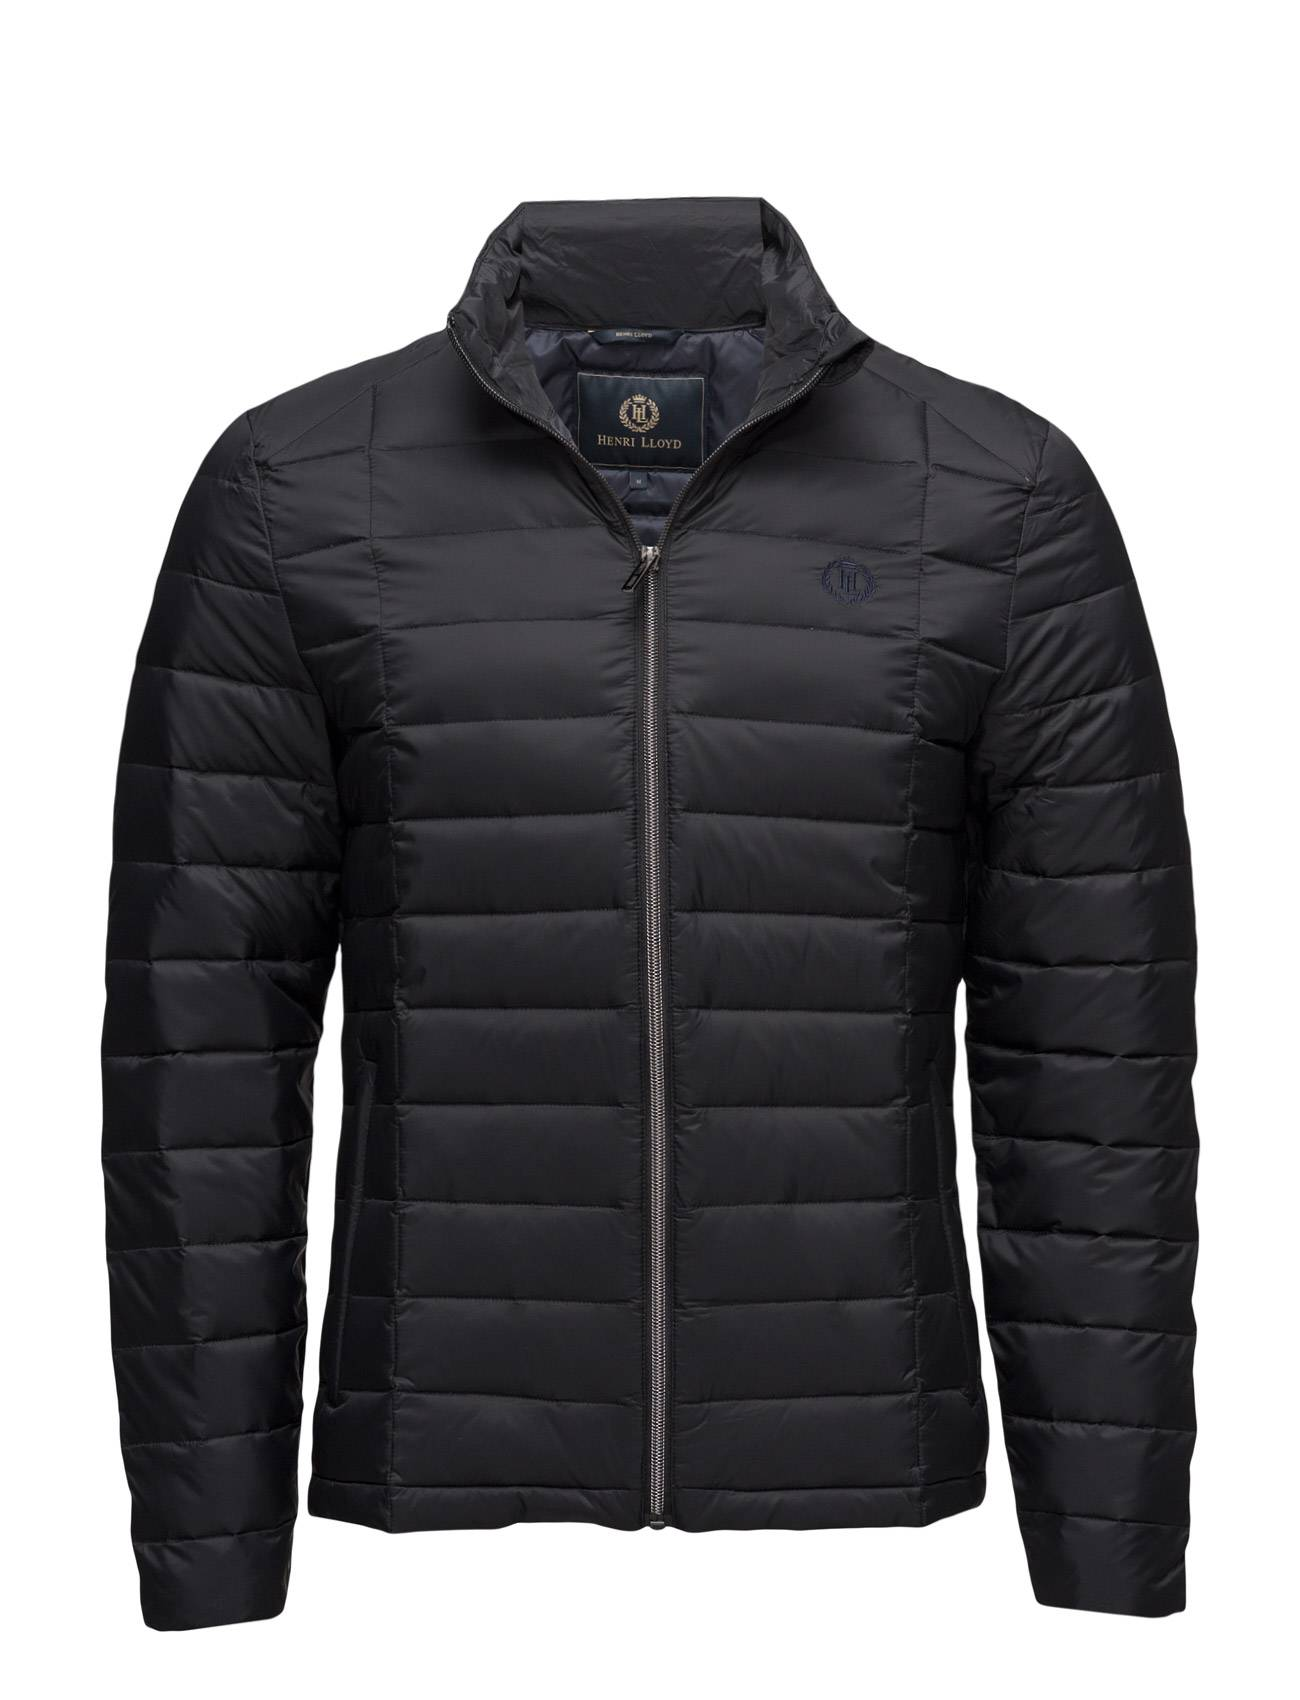 Henri Lloyd Ganton Nh Lightweight Down Jacket